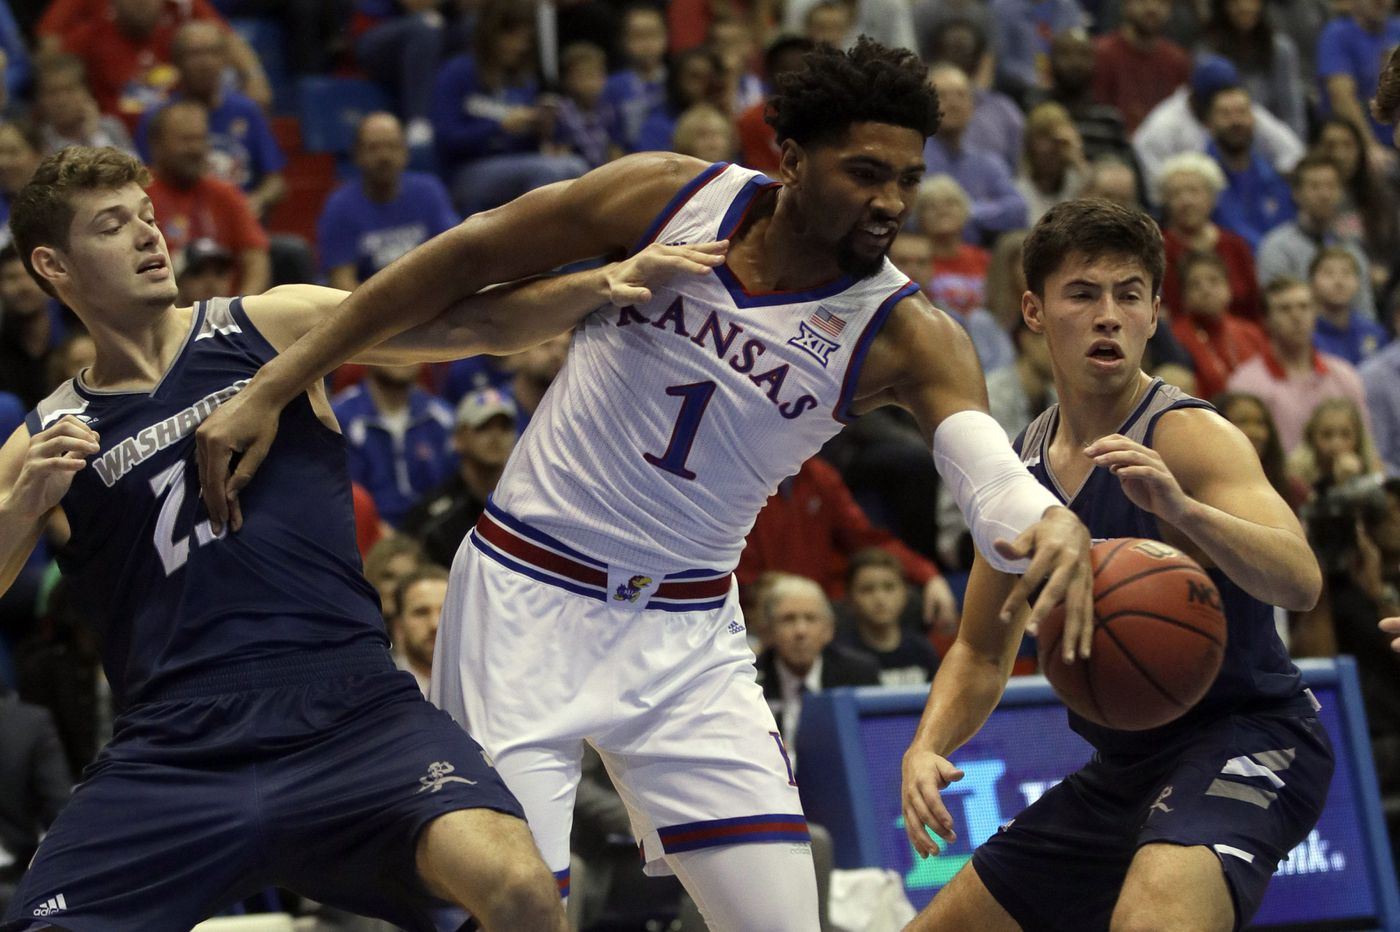 2018-19 college basketball preview: Despite corruption convictions, don't expect much change — Kansas is favored to win